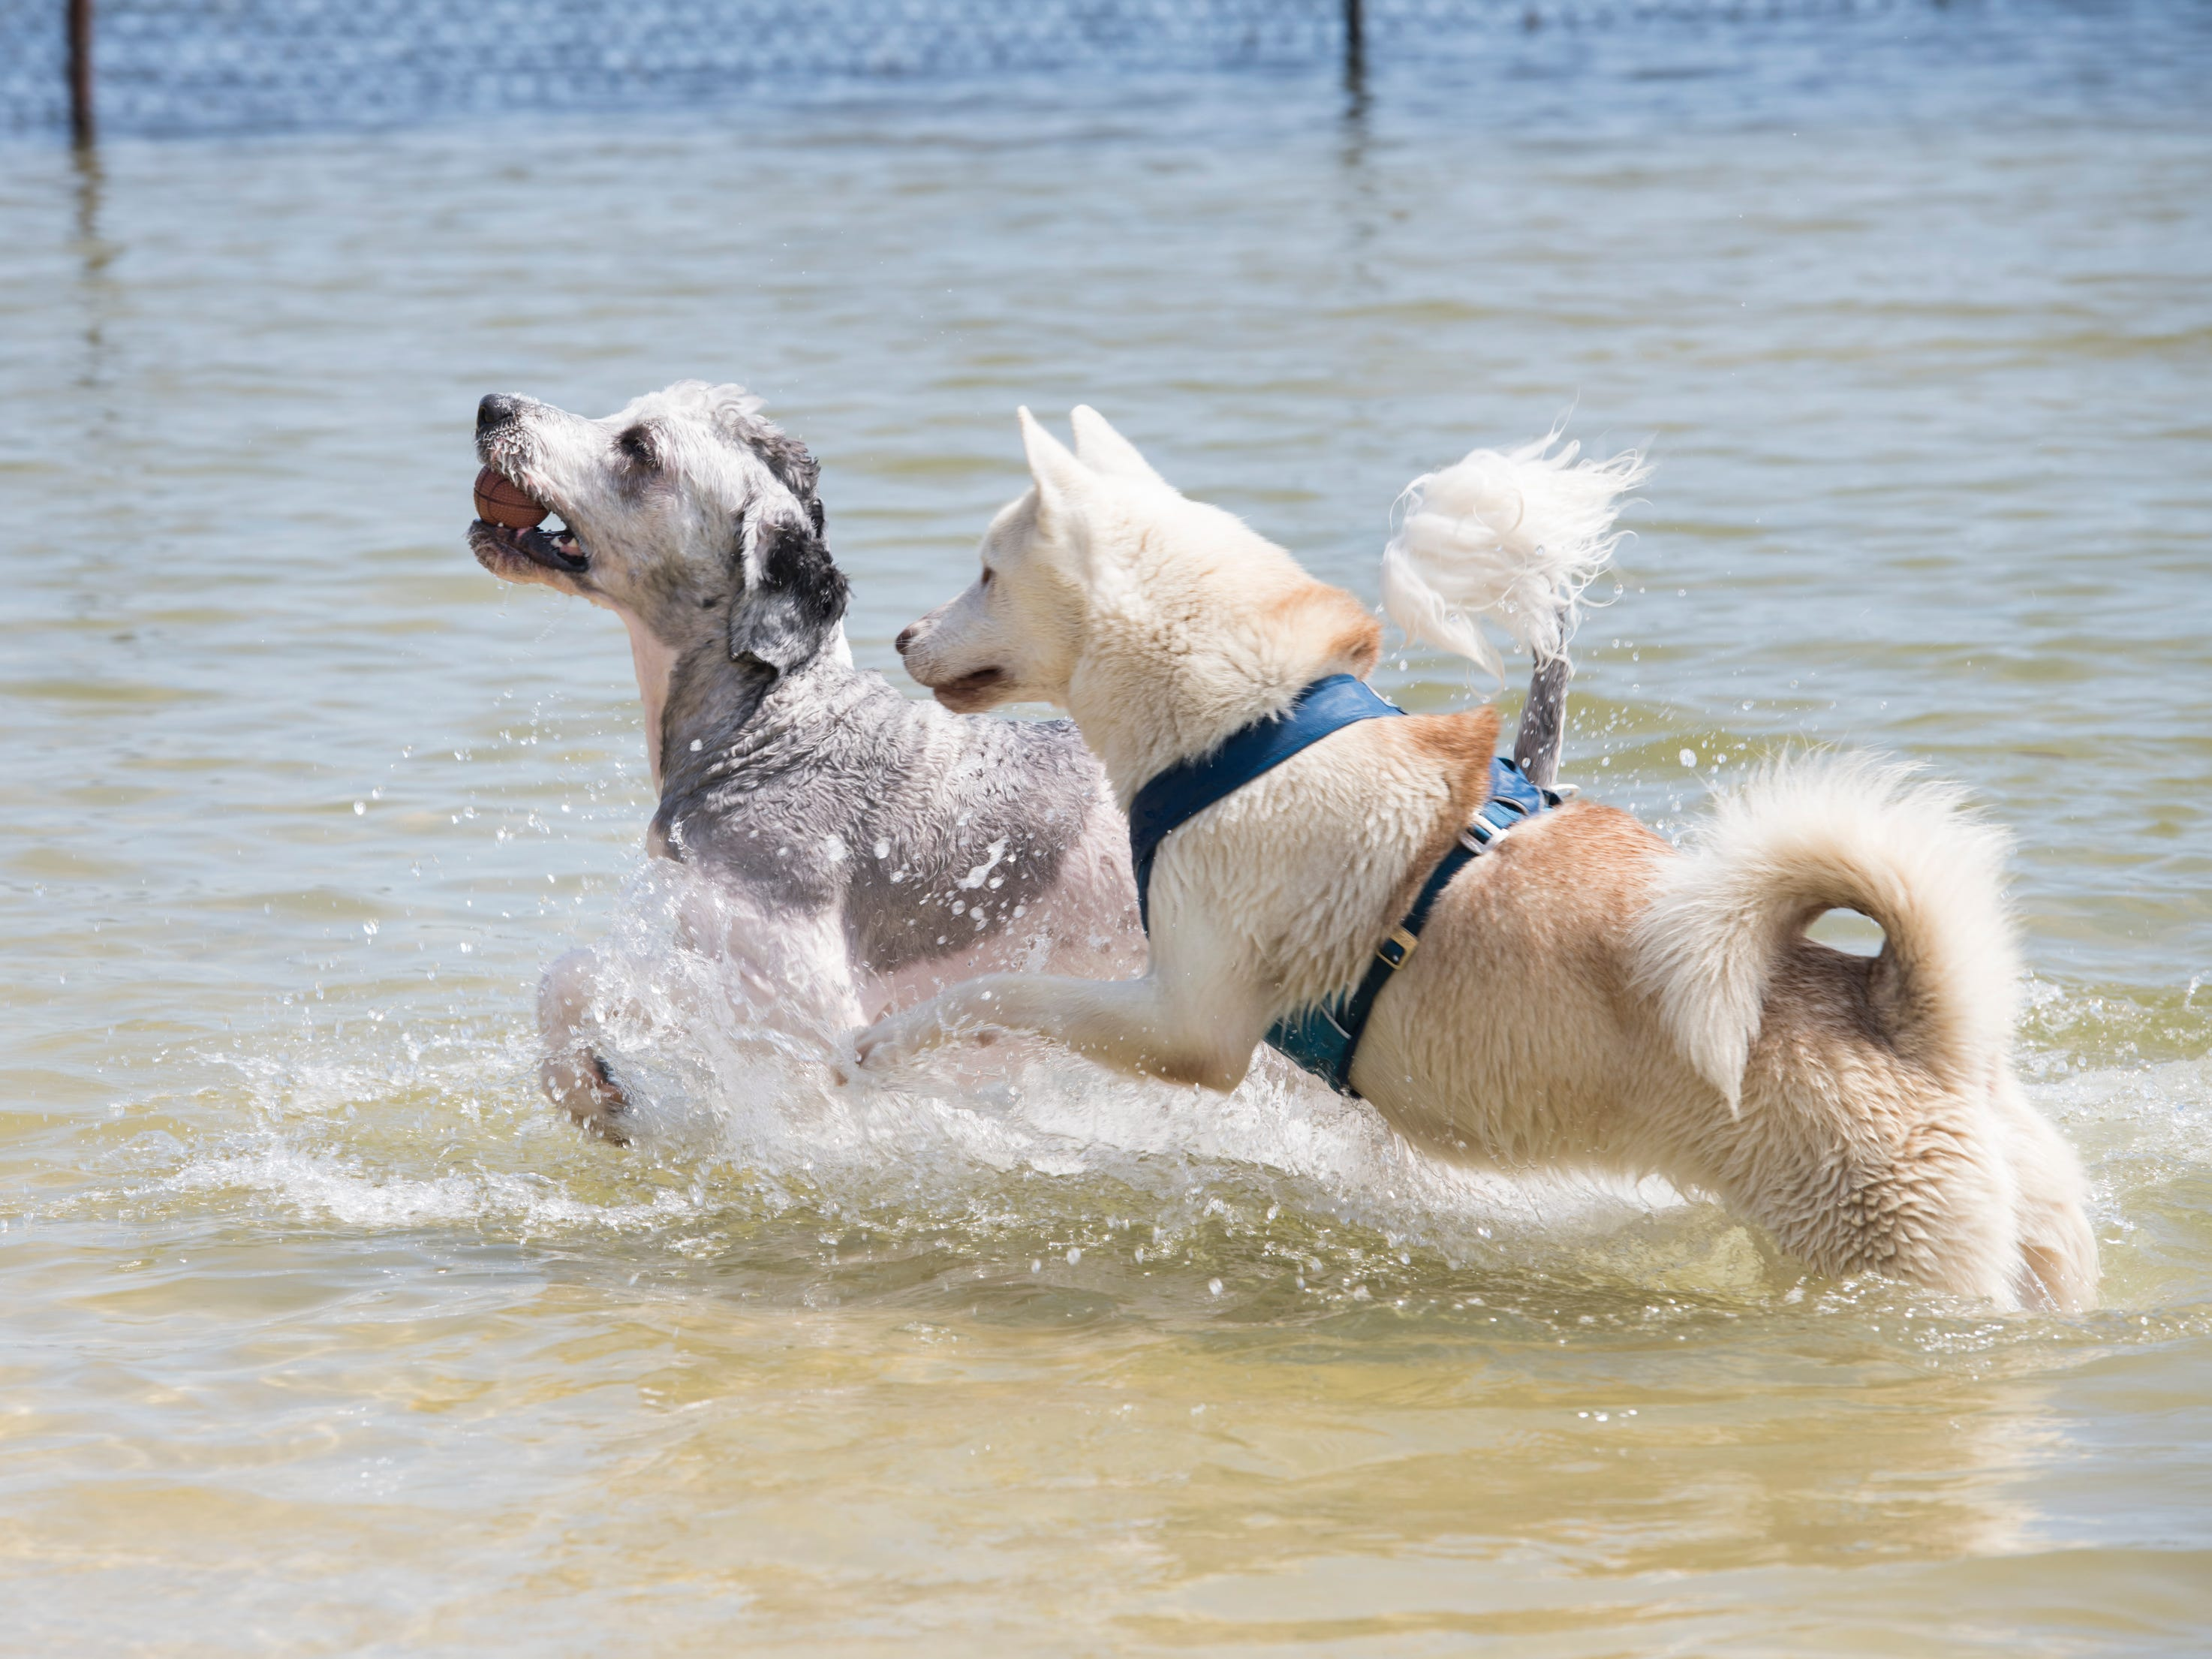 Willie Nelson, left, plays keep away from the ball with Bolt at Bayview Park's dog park in Pensacola on Tuesday, March 12, 2019.  Navarre residents hope to get a similar dog park for their city.